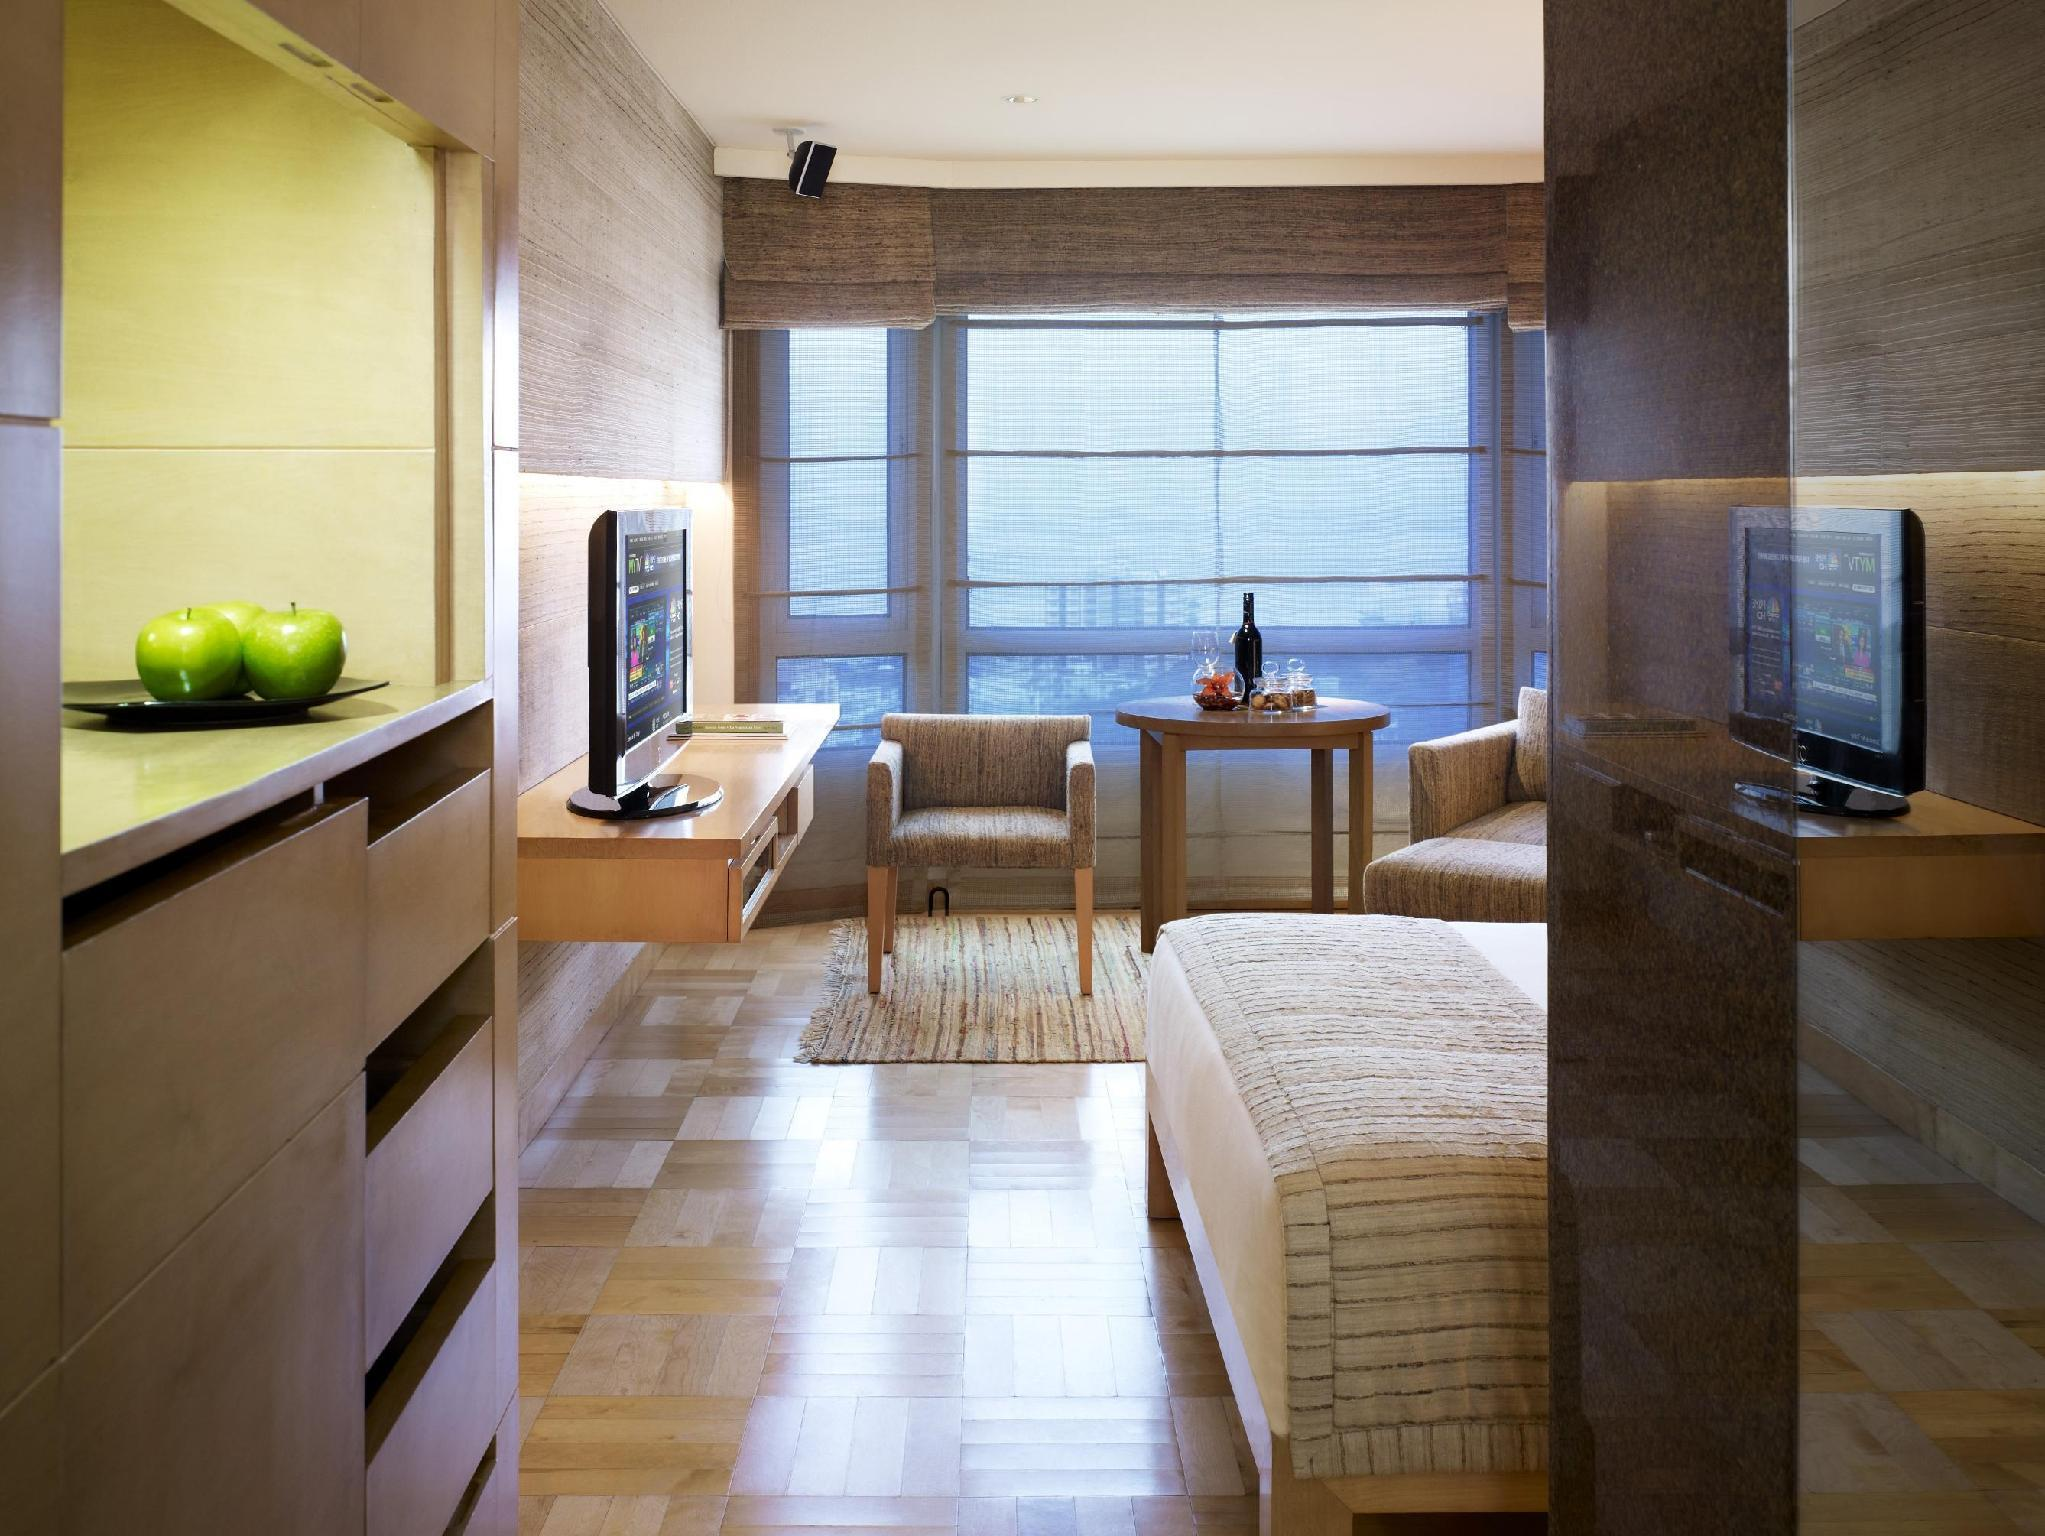 Premium Temptation Suite with Partial Sea view- Higher floor